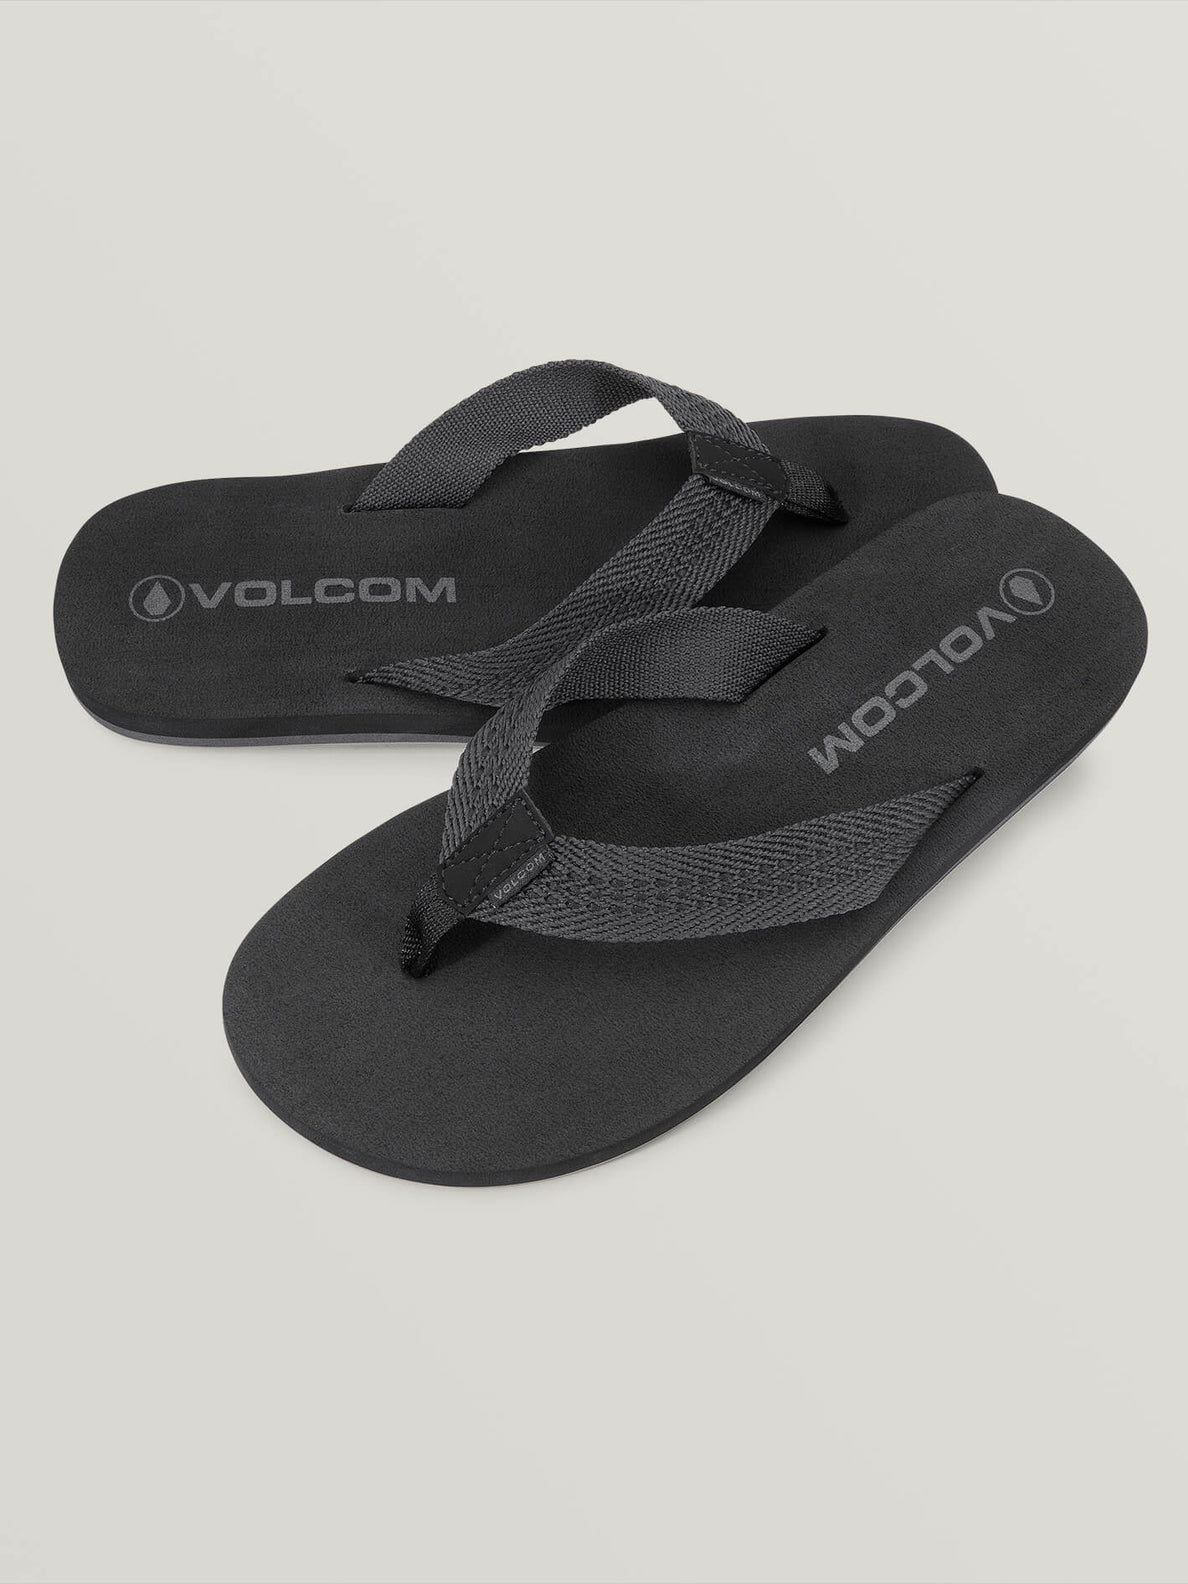 Daycation Sandals In Blackout, Front View